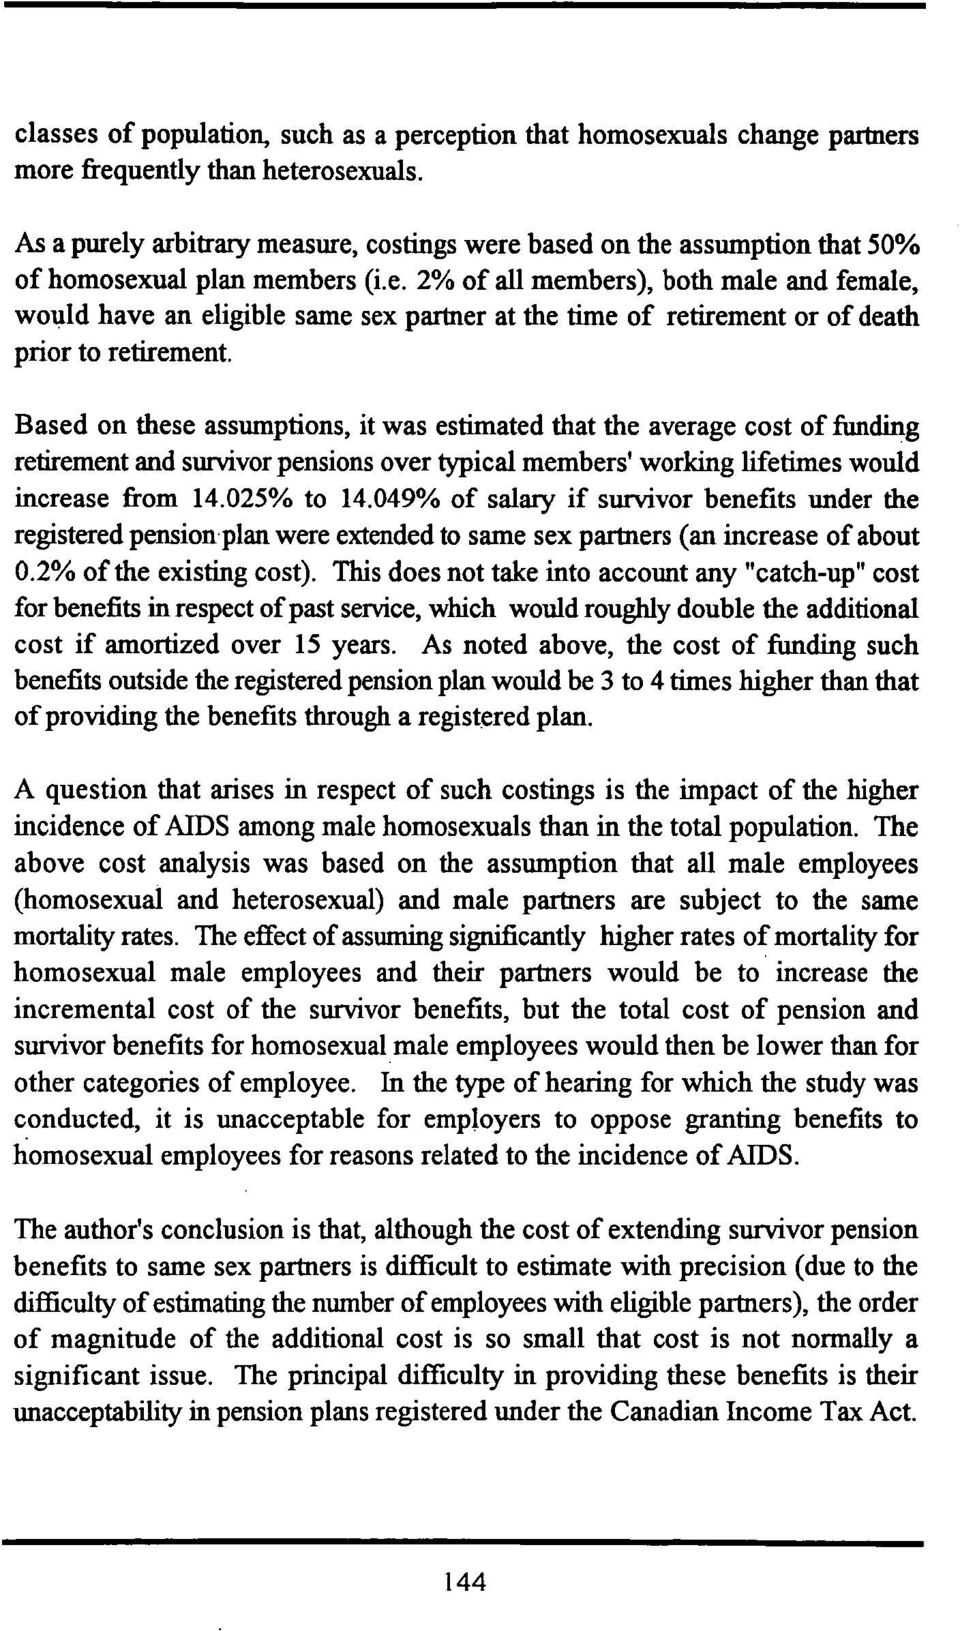 Based on these assumptions, it was estimated that the average cost of funding retirement and survivor pensions over typical members' working lifetimes would increase from 14.025% to 14.